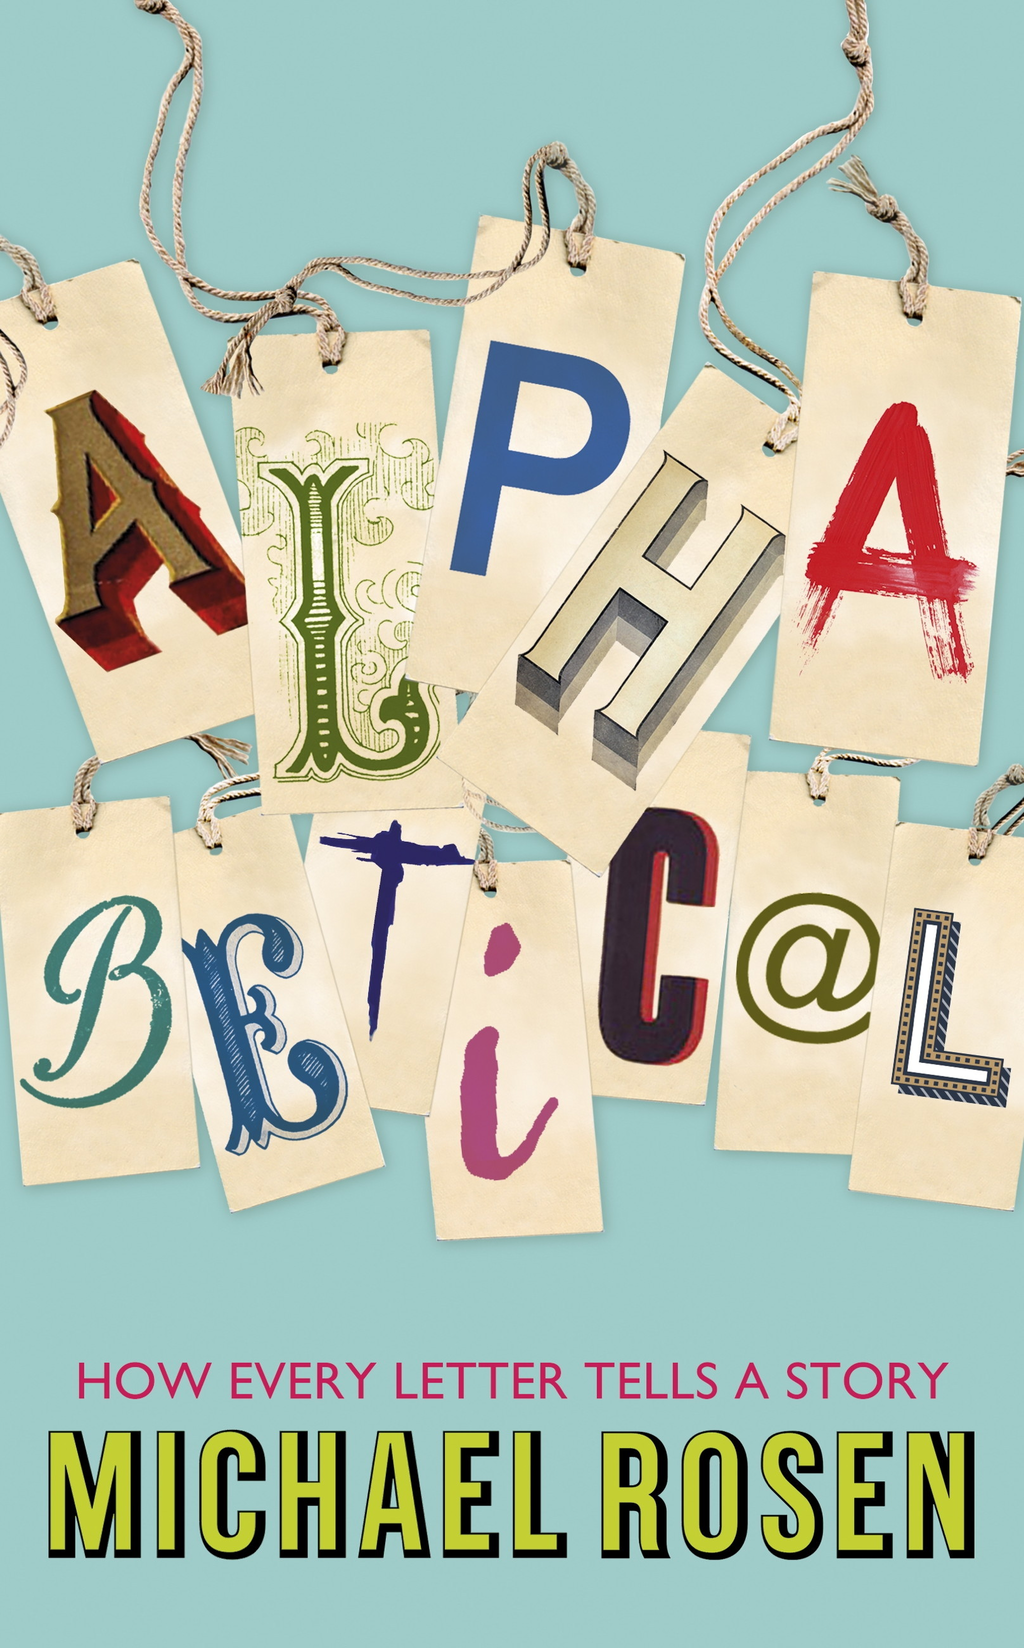 Alphabetical How Every Letter Tells a Story